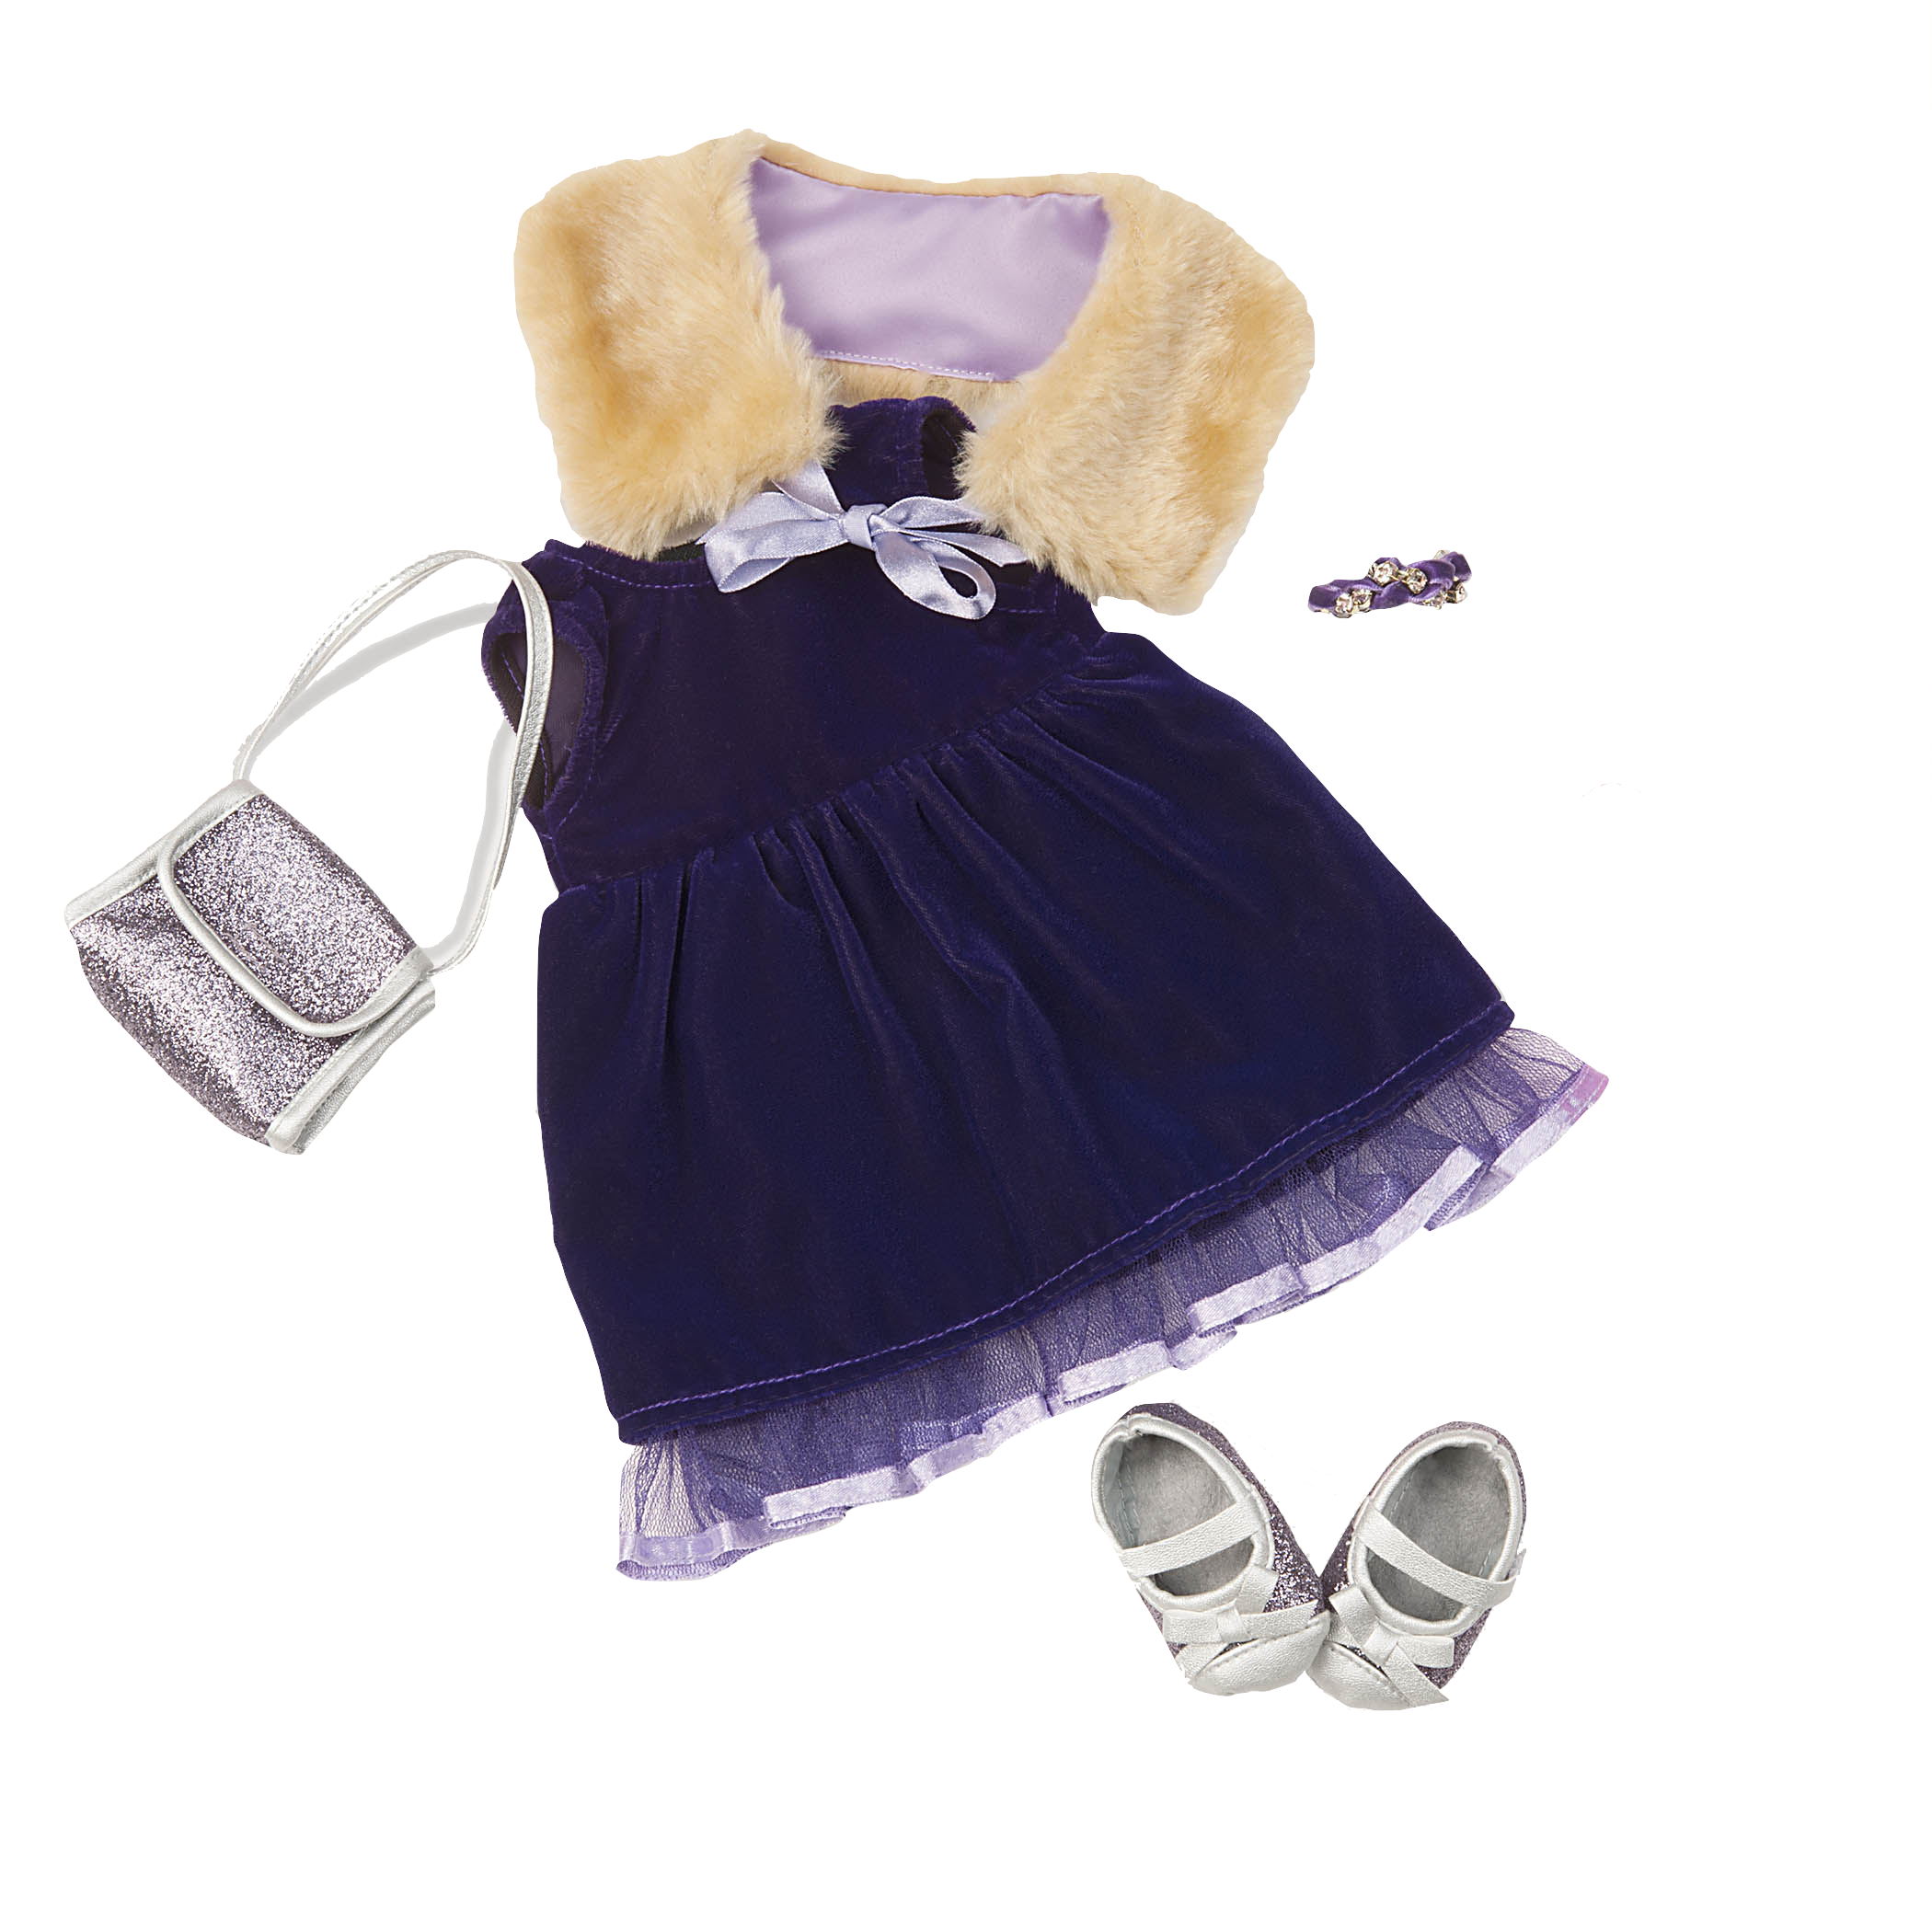 Plus the Plush Velvet Dress Outfit for 18-inch Dolls